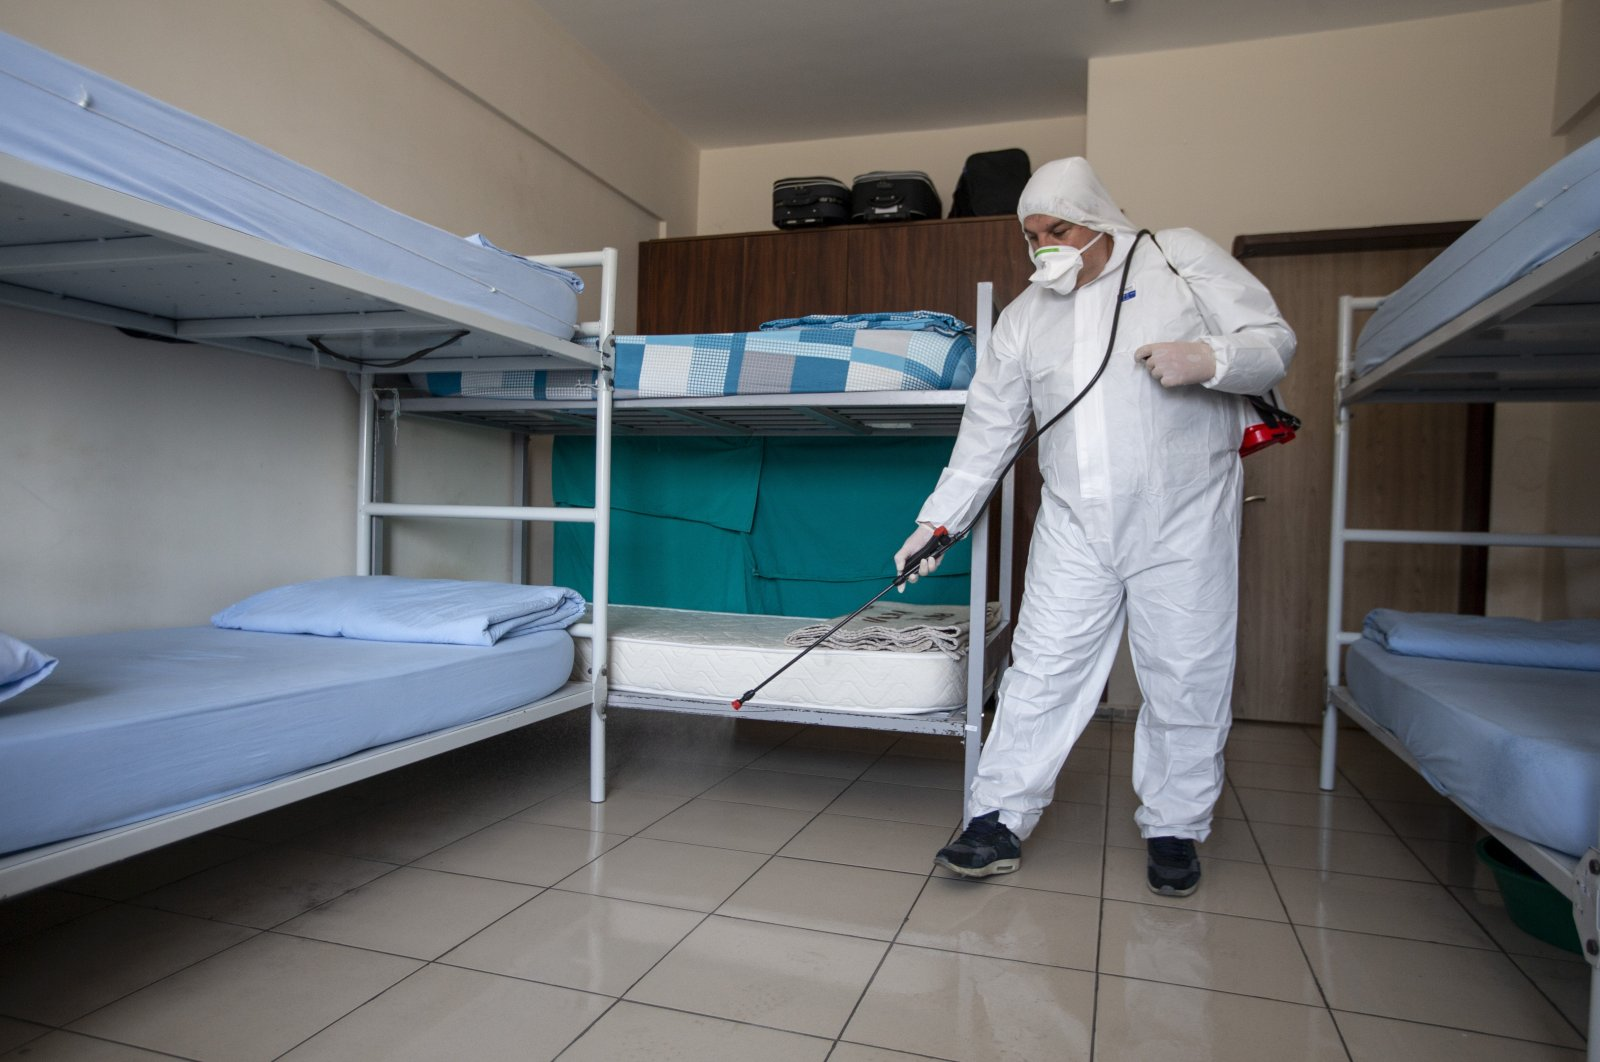 A staff member disinfects a prison in Ankara's Sincan district earlier this month. Justice minister Gül earlier announced that there were no coronavirus cases in prisons in the country, where about 300,000 people remain incarcerated. (AA Photo)